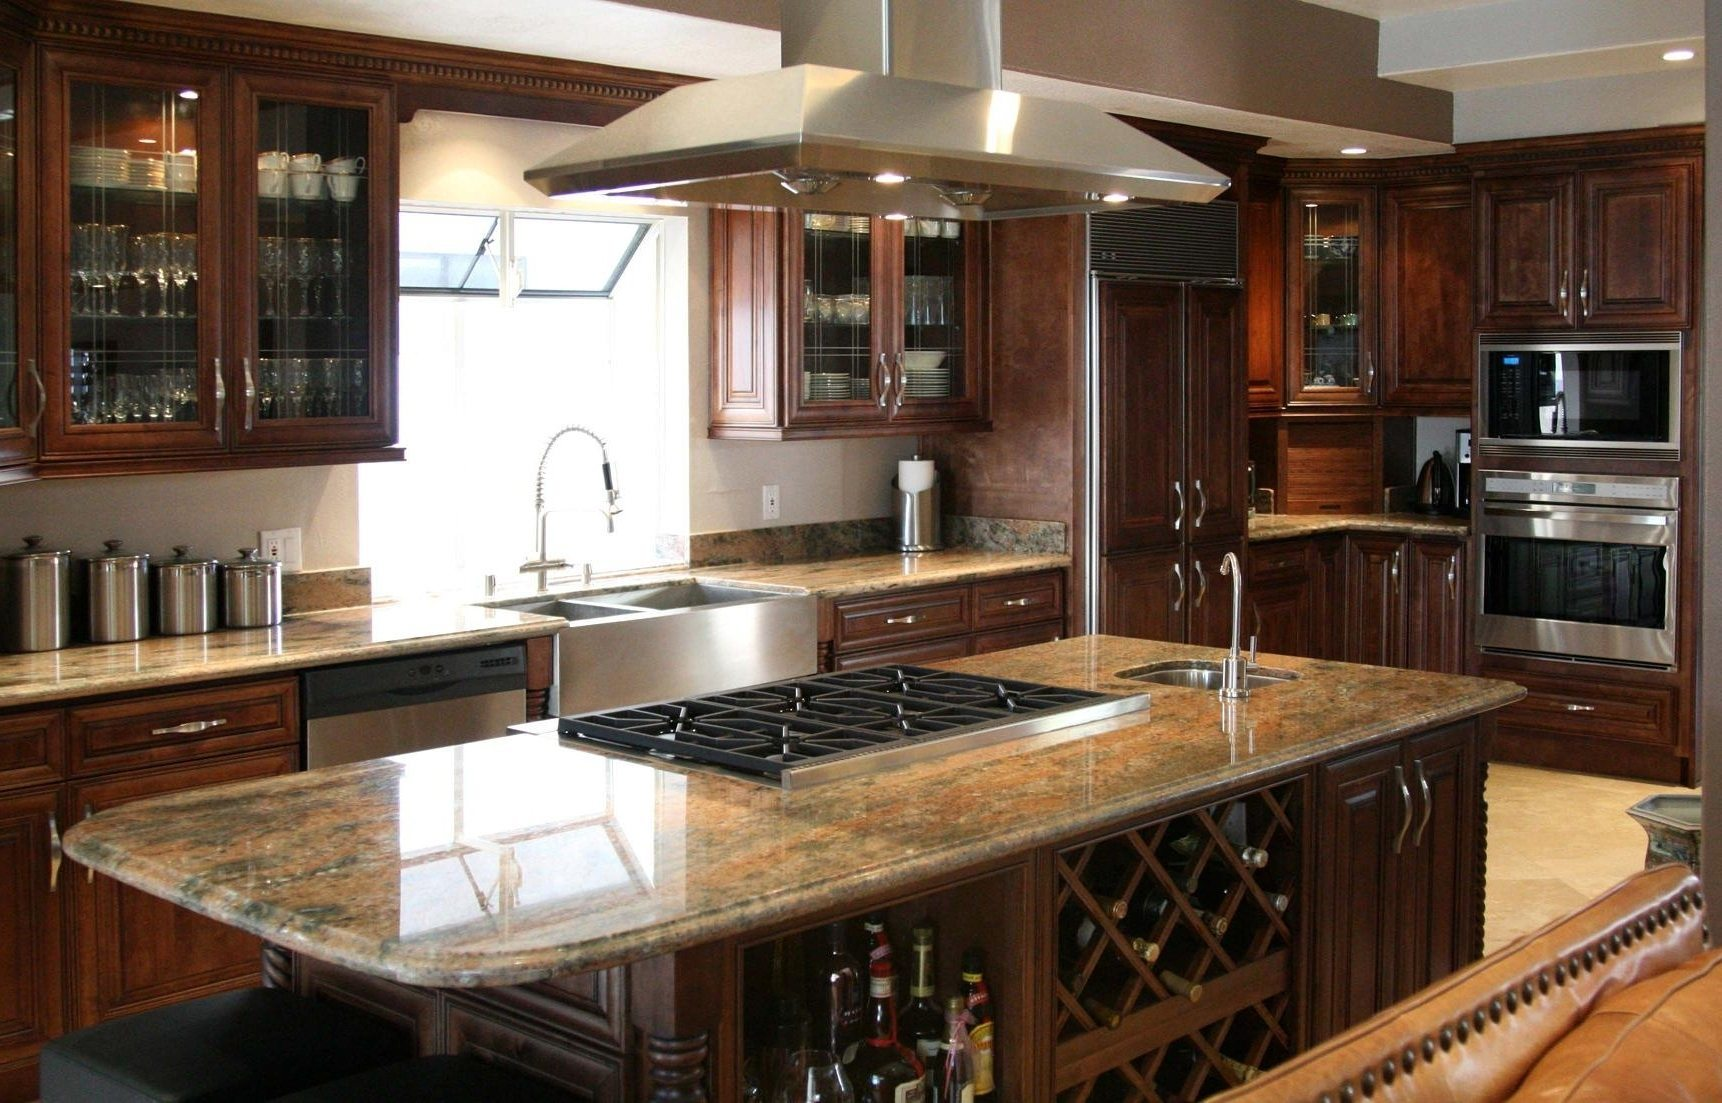 kitchen-classic-kitchen-ideas-with-wooden-kitchen-cabinetry